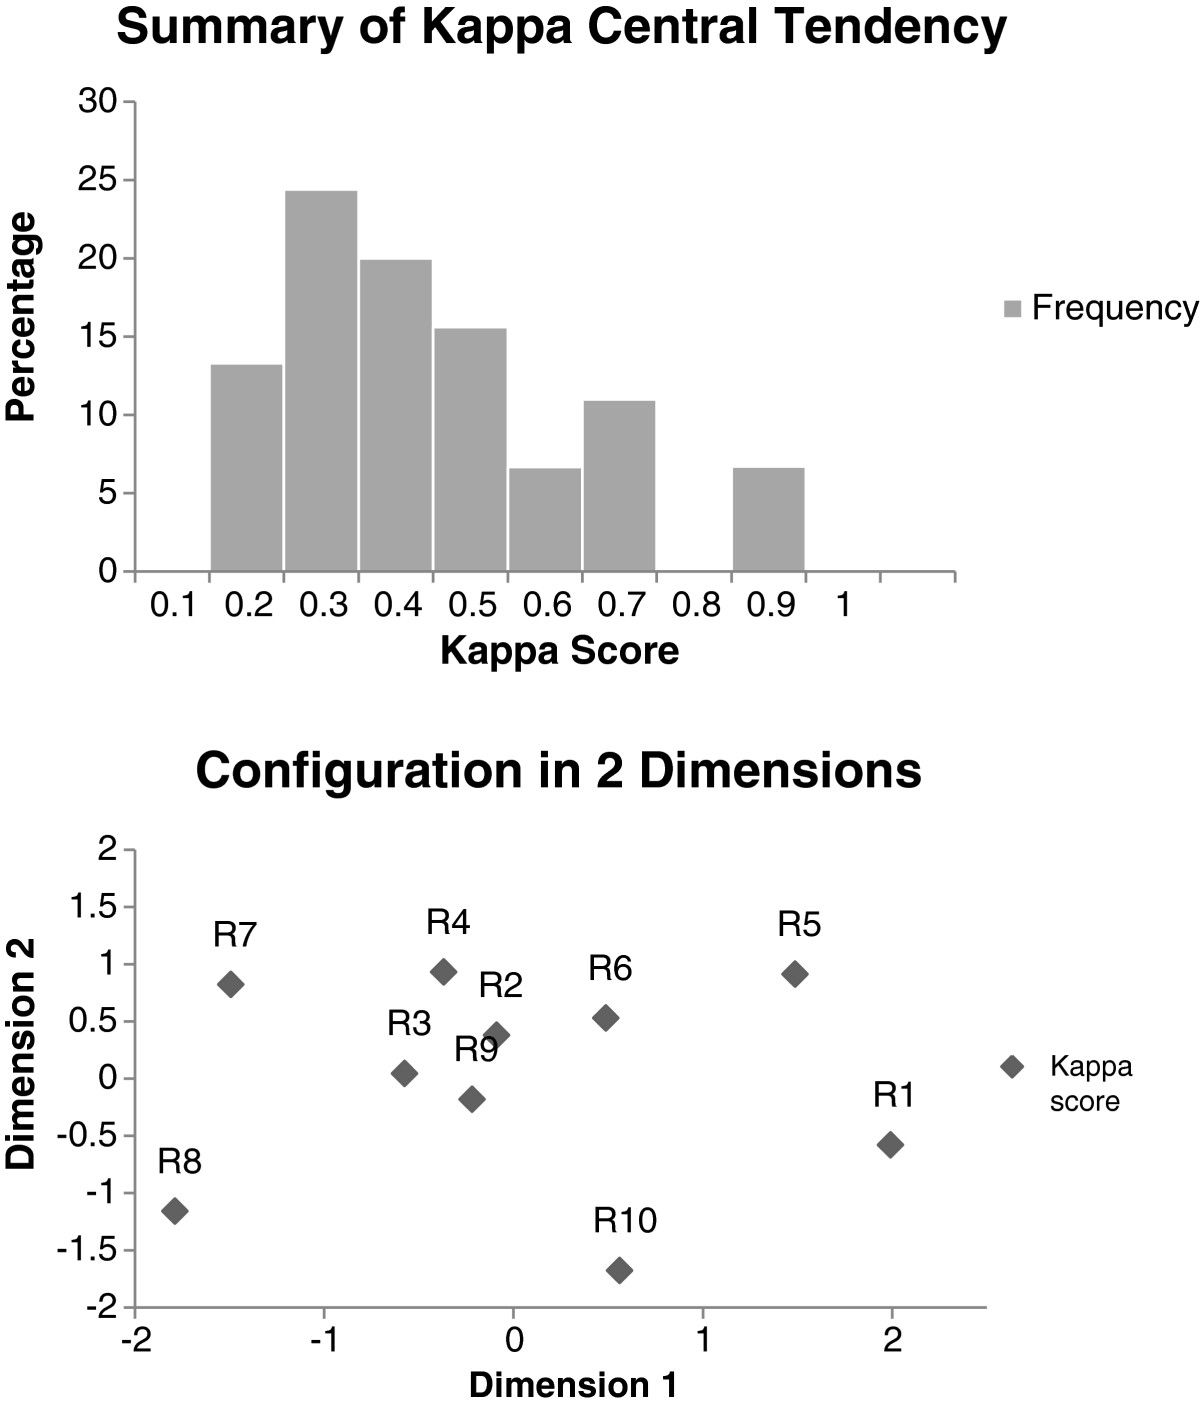 http://static-content.springer.com/image/art%3A10.1186%2F2193-1801-1-60/MediaObjects/40064_2012_Article_94_Fig1_HTML.jpg